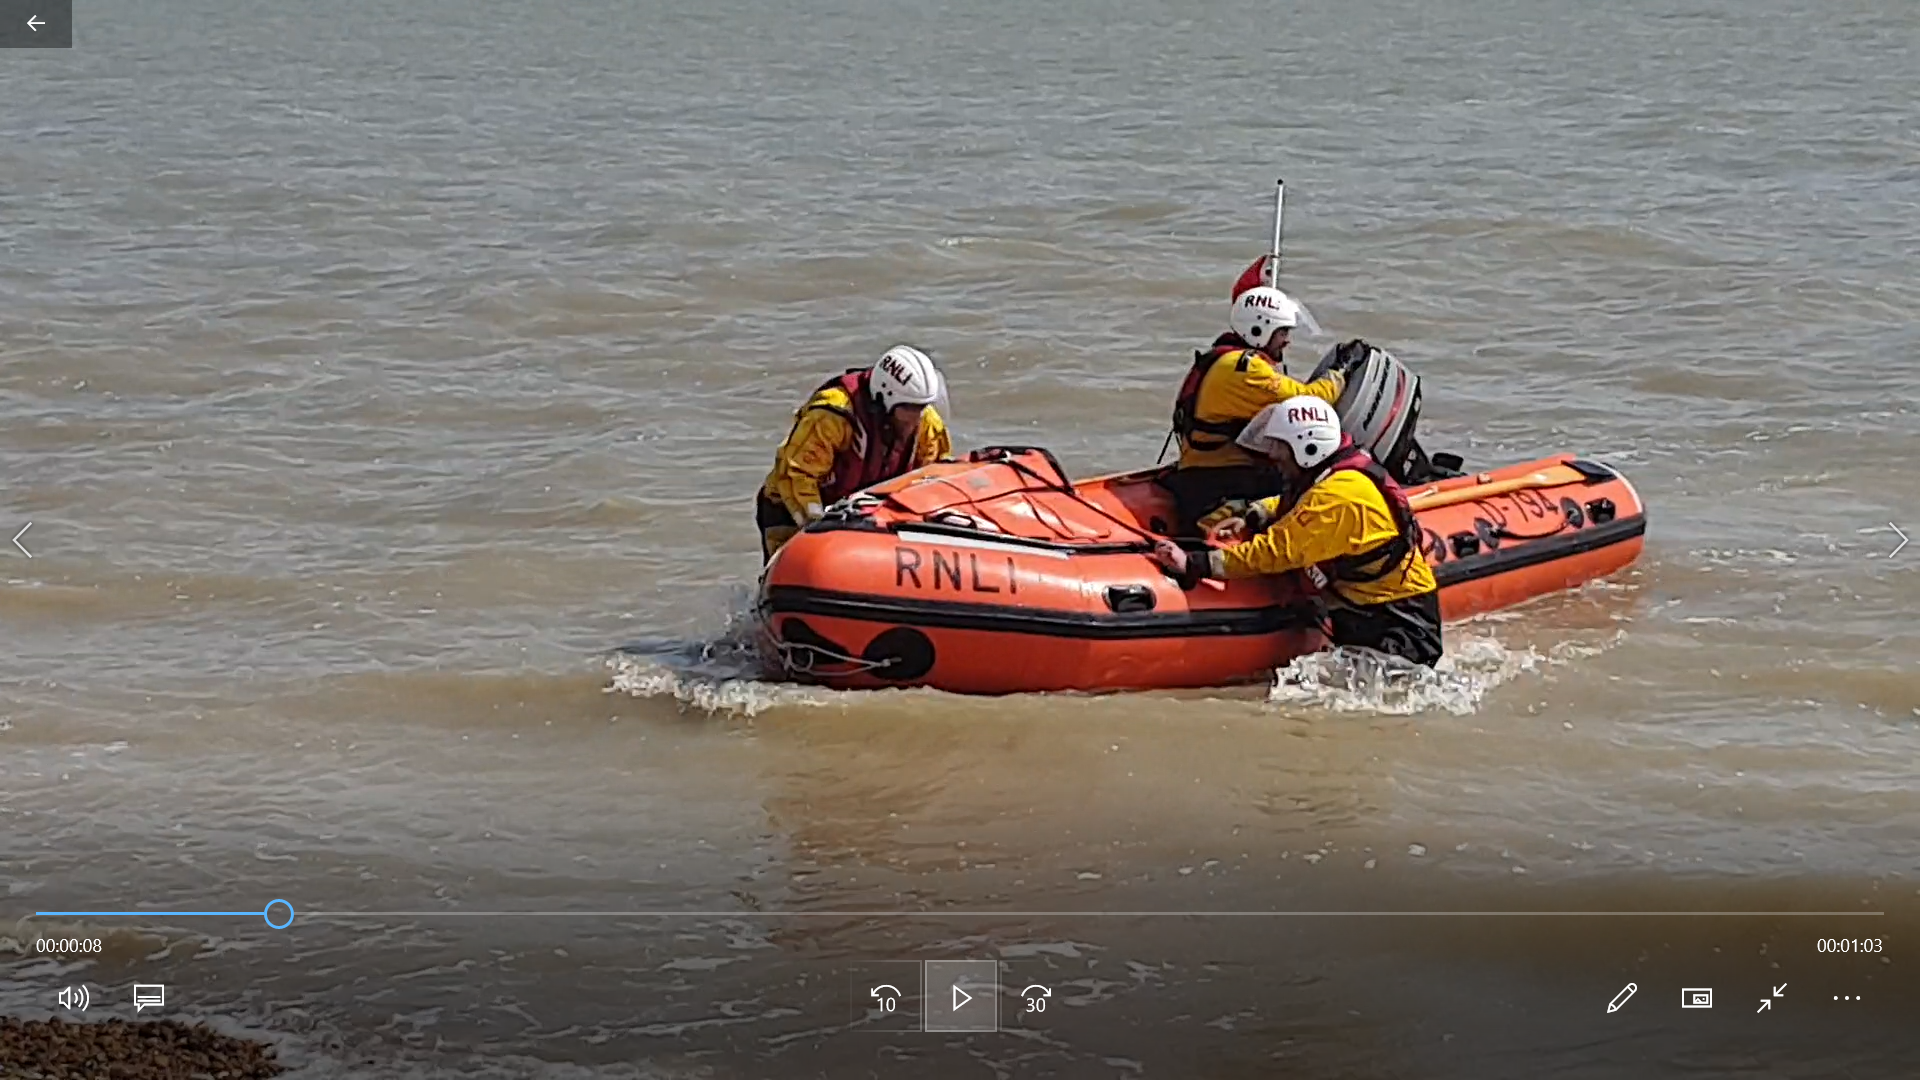 Walmer's inshore lifeboat Duggie Rodbard II returning from service.